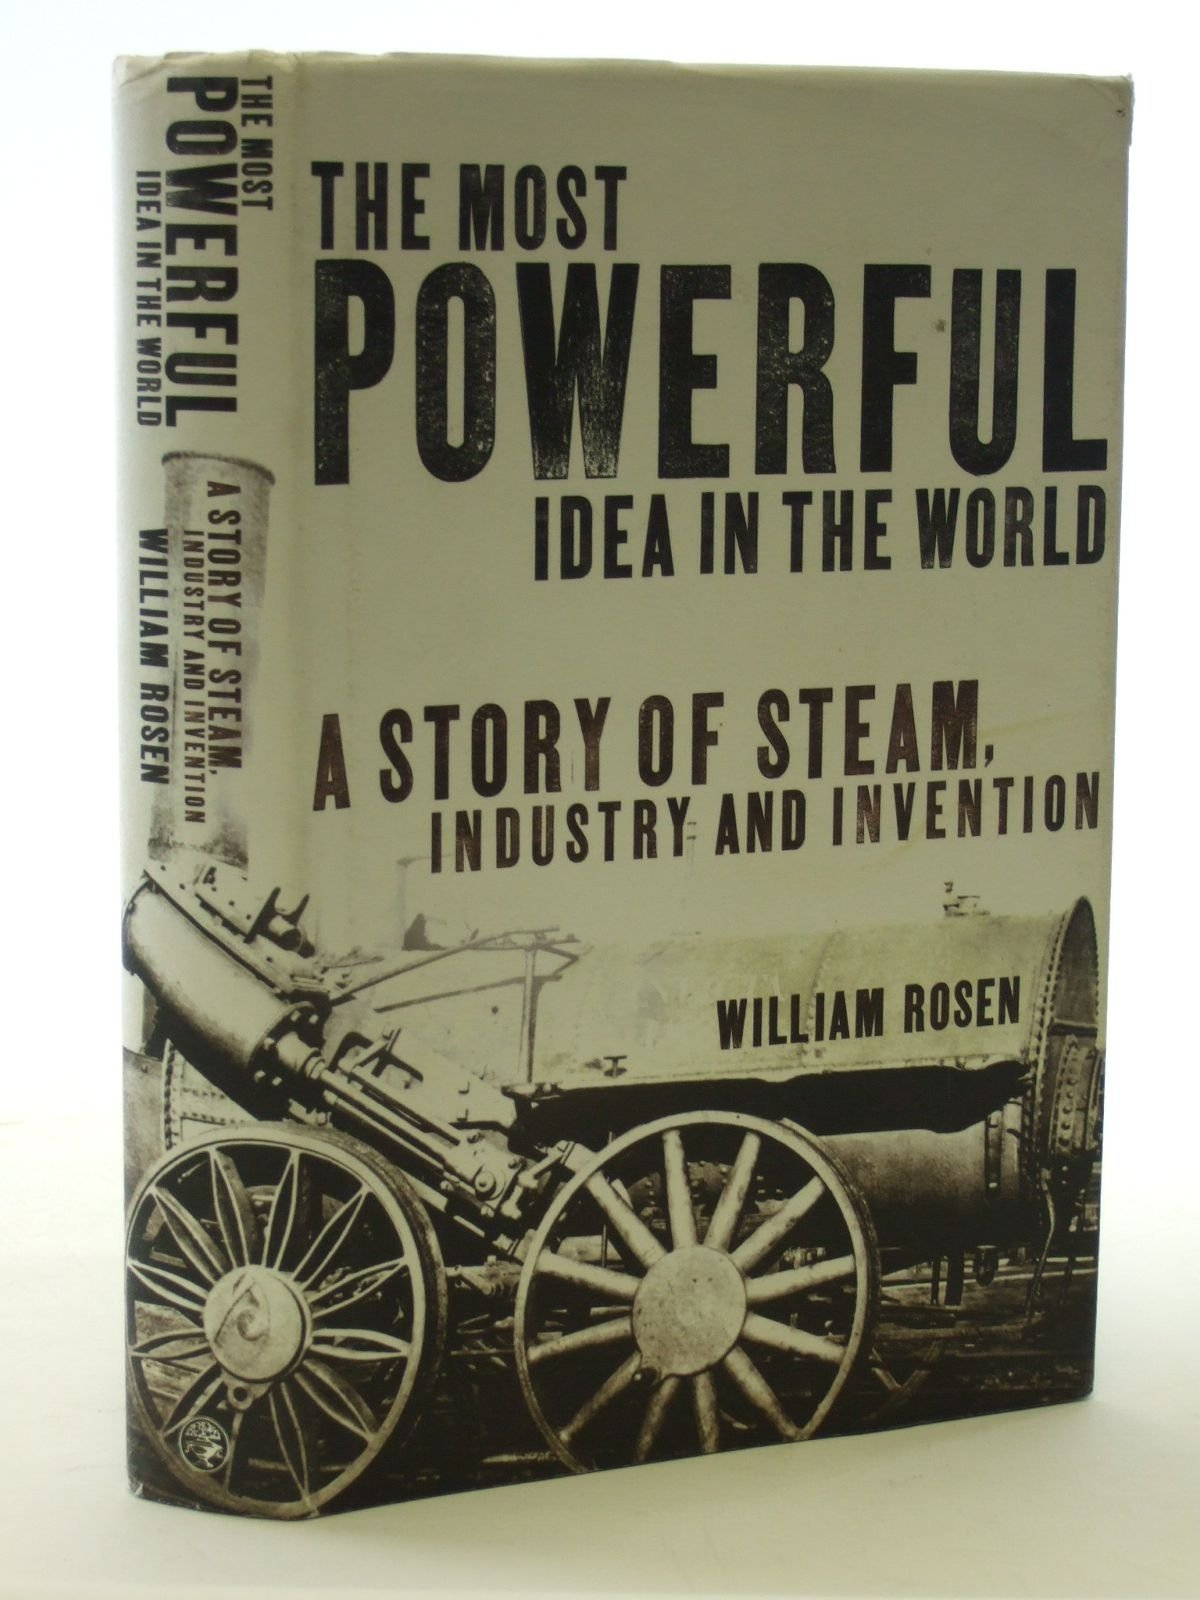 10 Amazing The Most Powerful Idea In The World the most powerful idea in the world a story of steam industry and 2 2021